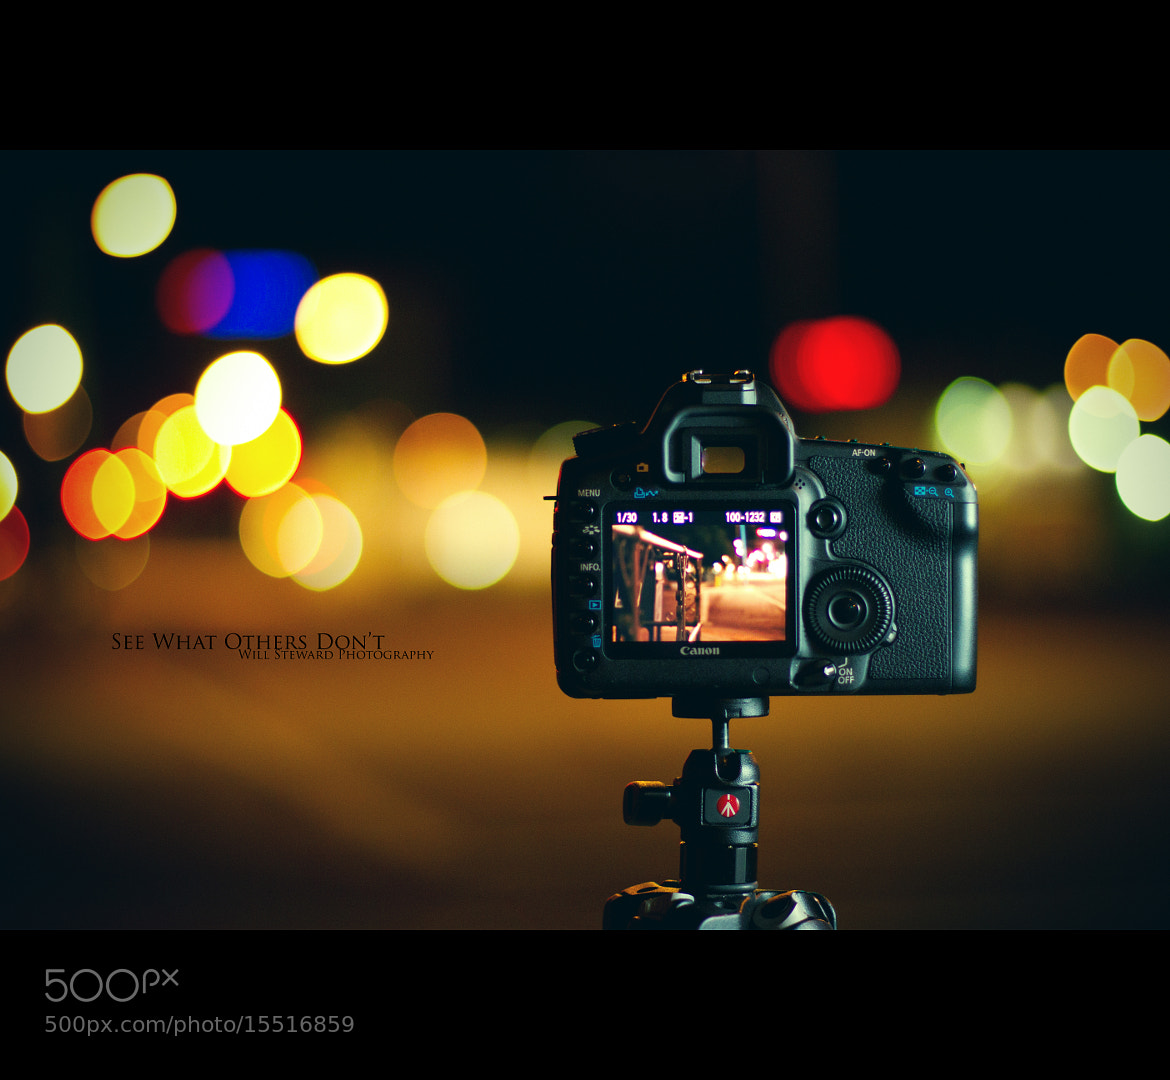 Photograph 28:50 See What Others Don't by Will Steward on 500px